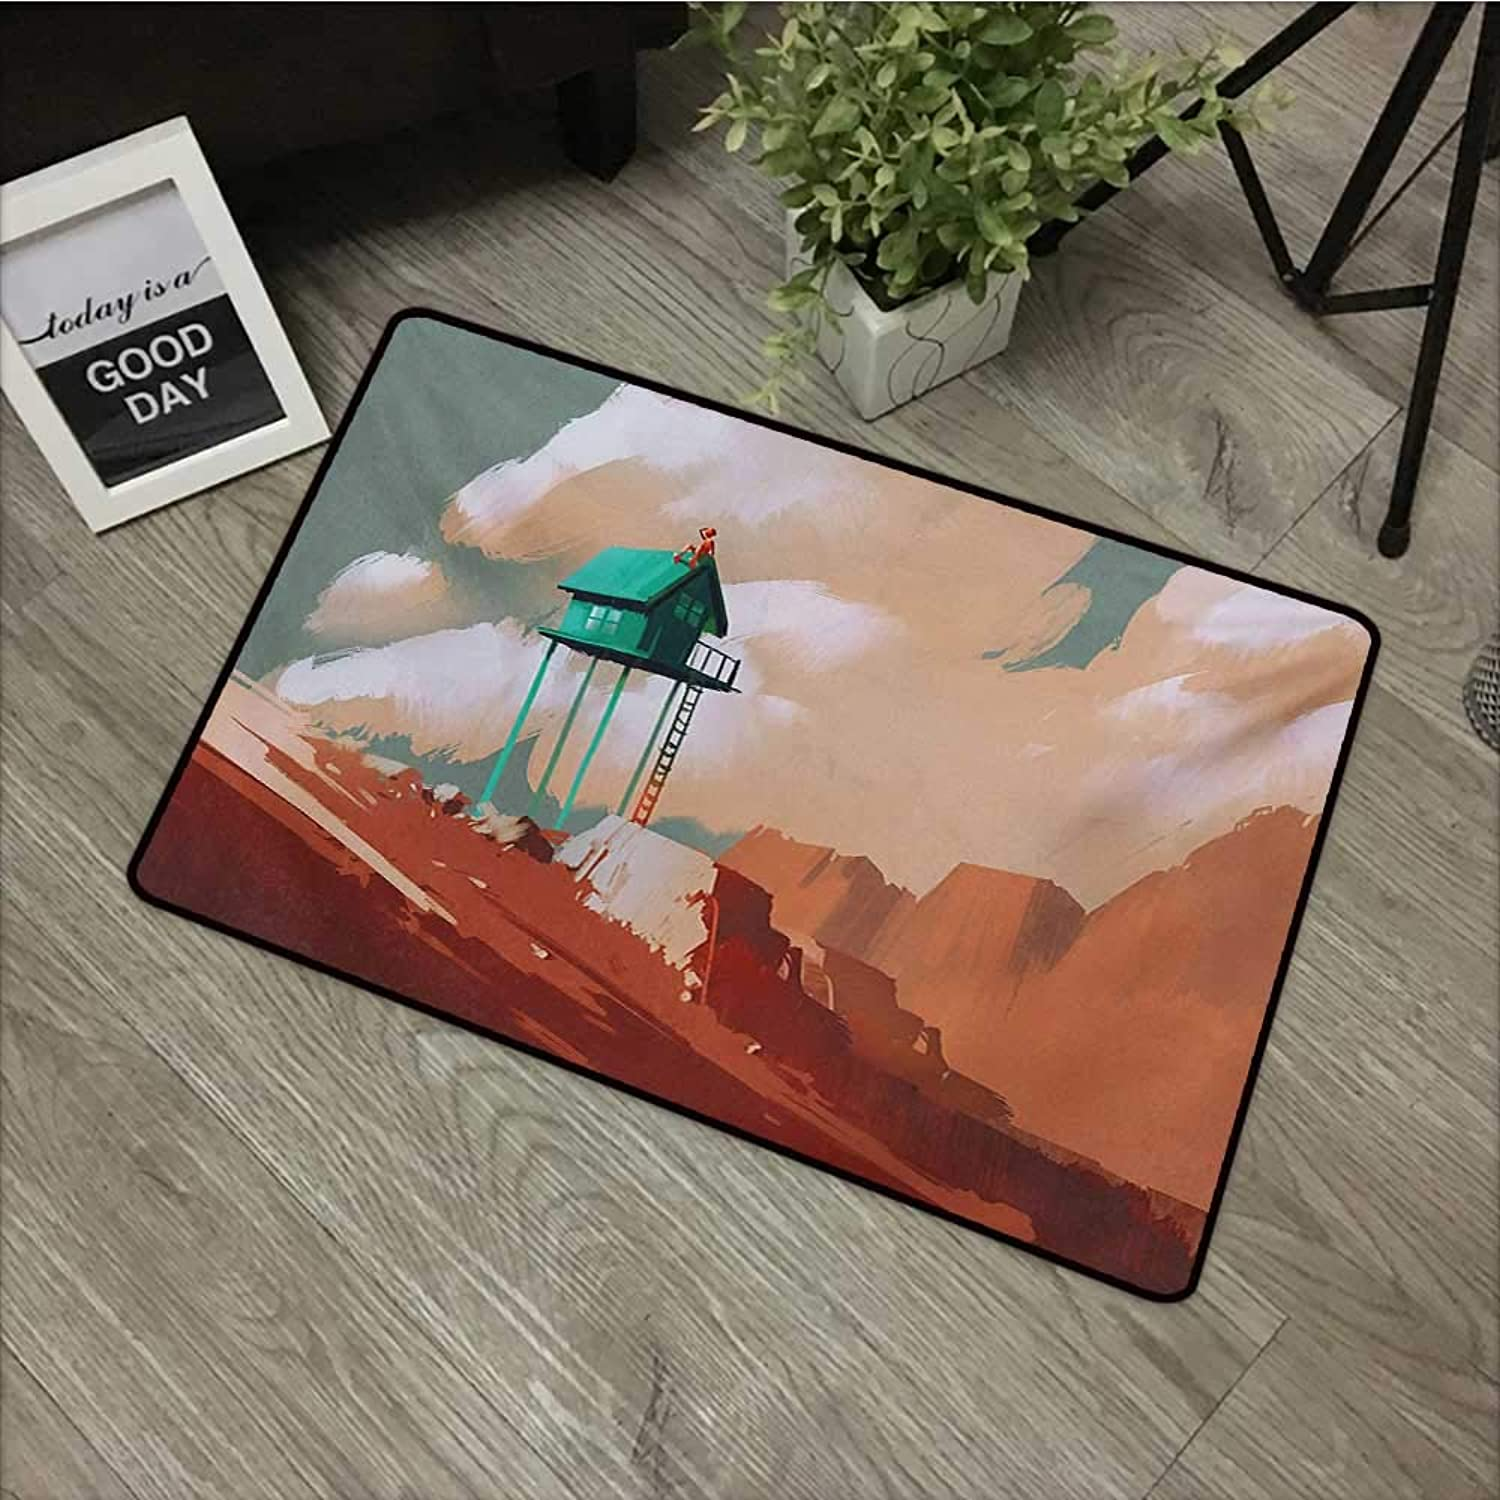 Bathroom Door mat W35 x L47 INCH Fantasy,Little Wood House on Stone Hill with Robot on The Cloudy Roof Calming Artwork Print,Tan Green Easy to Clean, Easy to fold,Non-Slip Door Mat Carpet